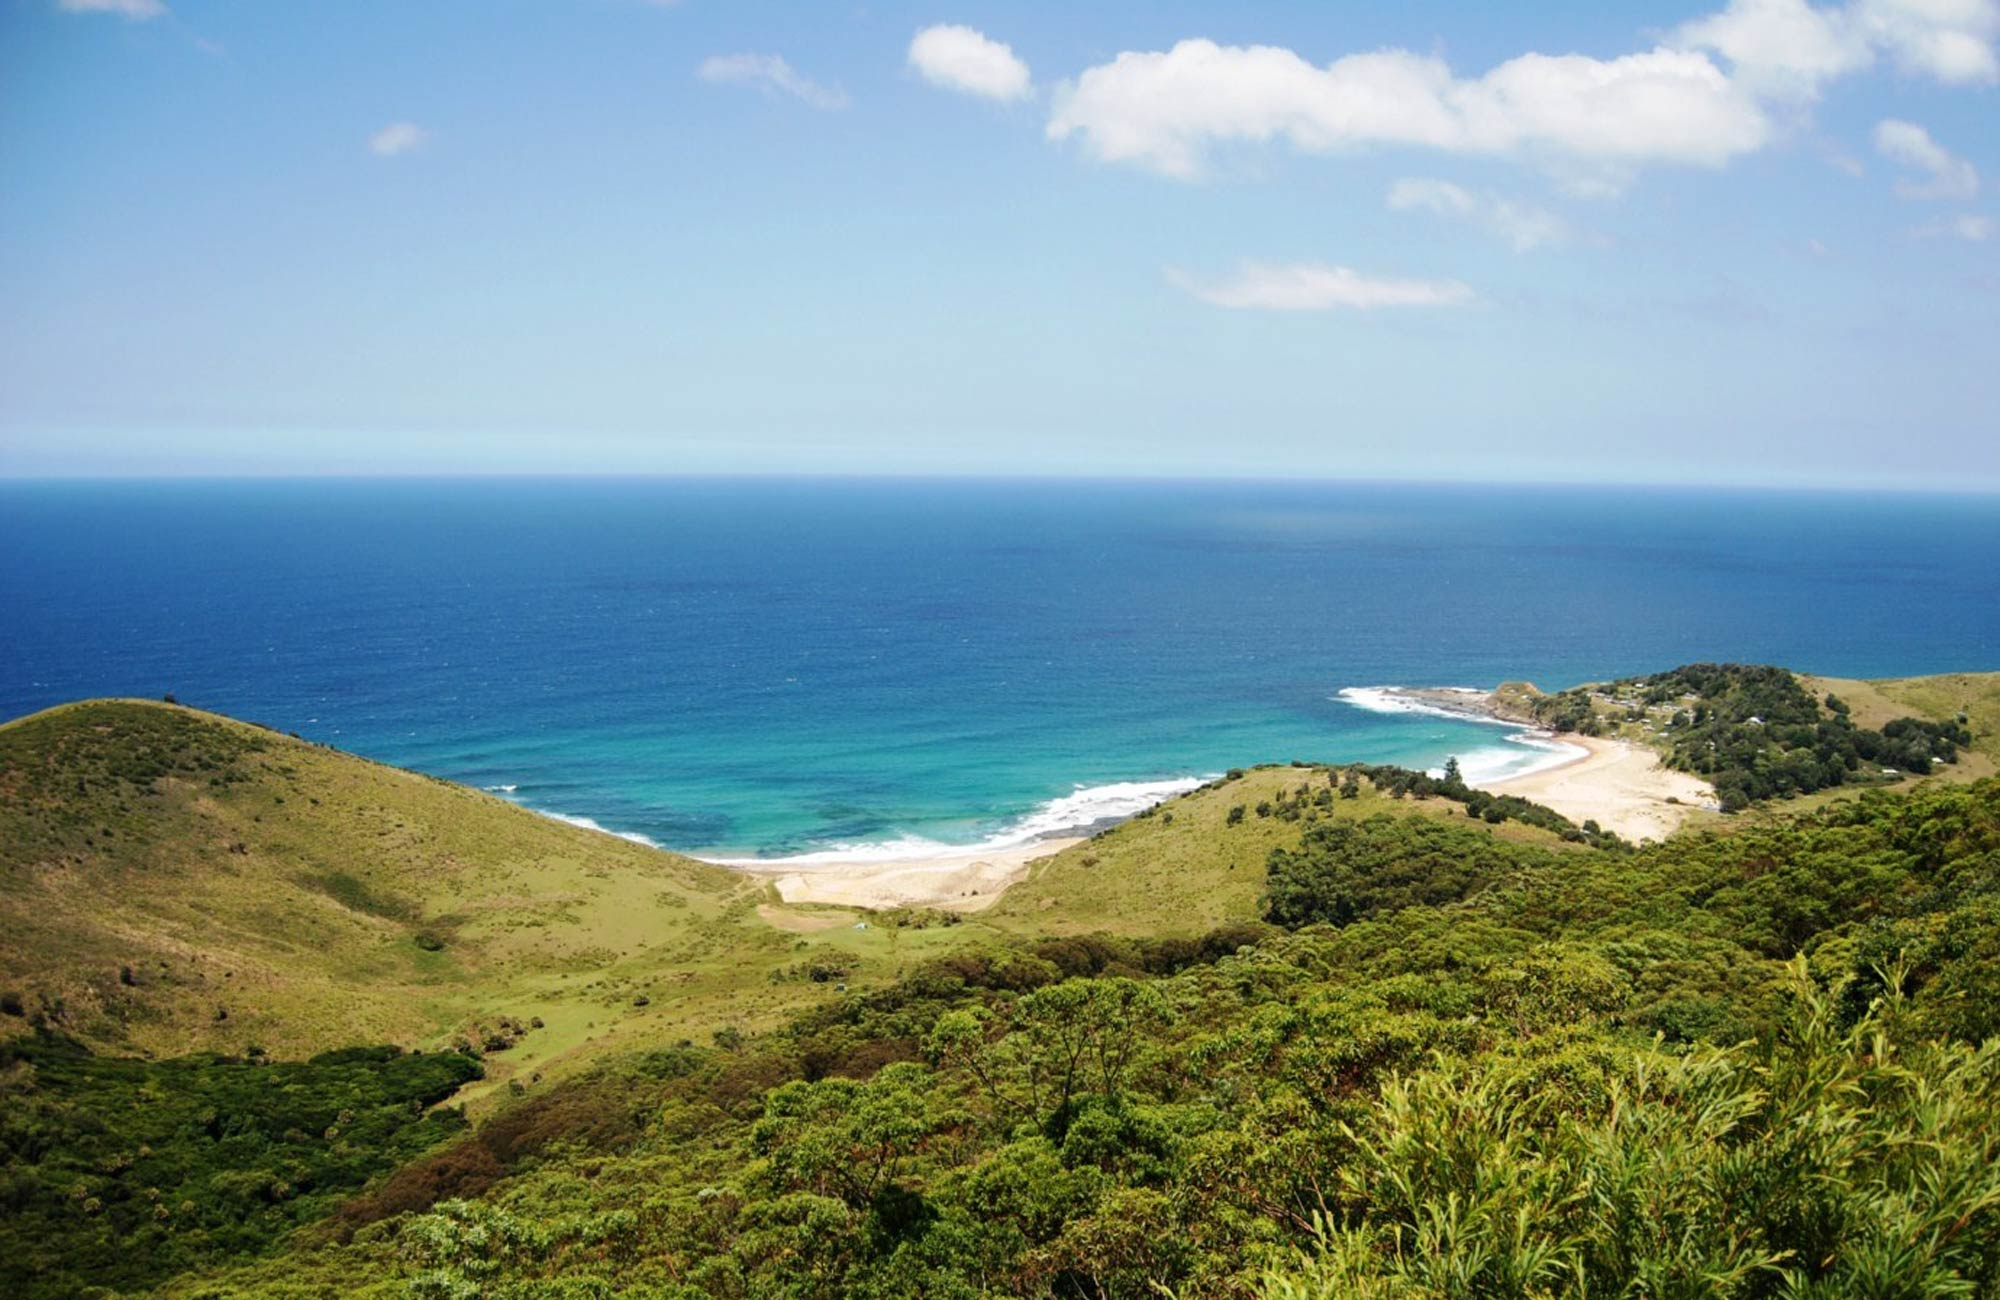 governor game lookout royal national park photo udunsw government